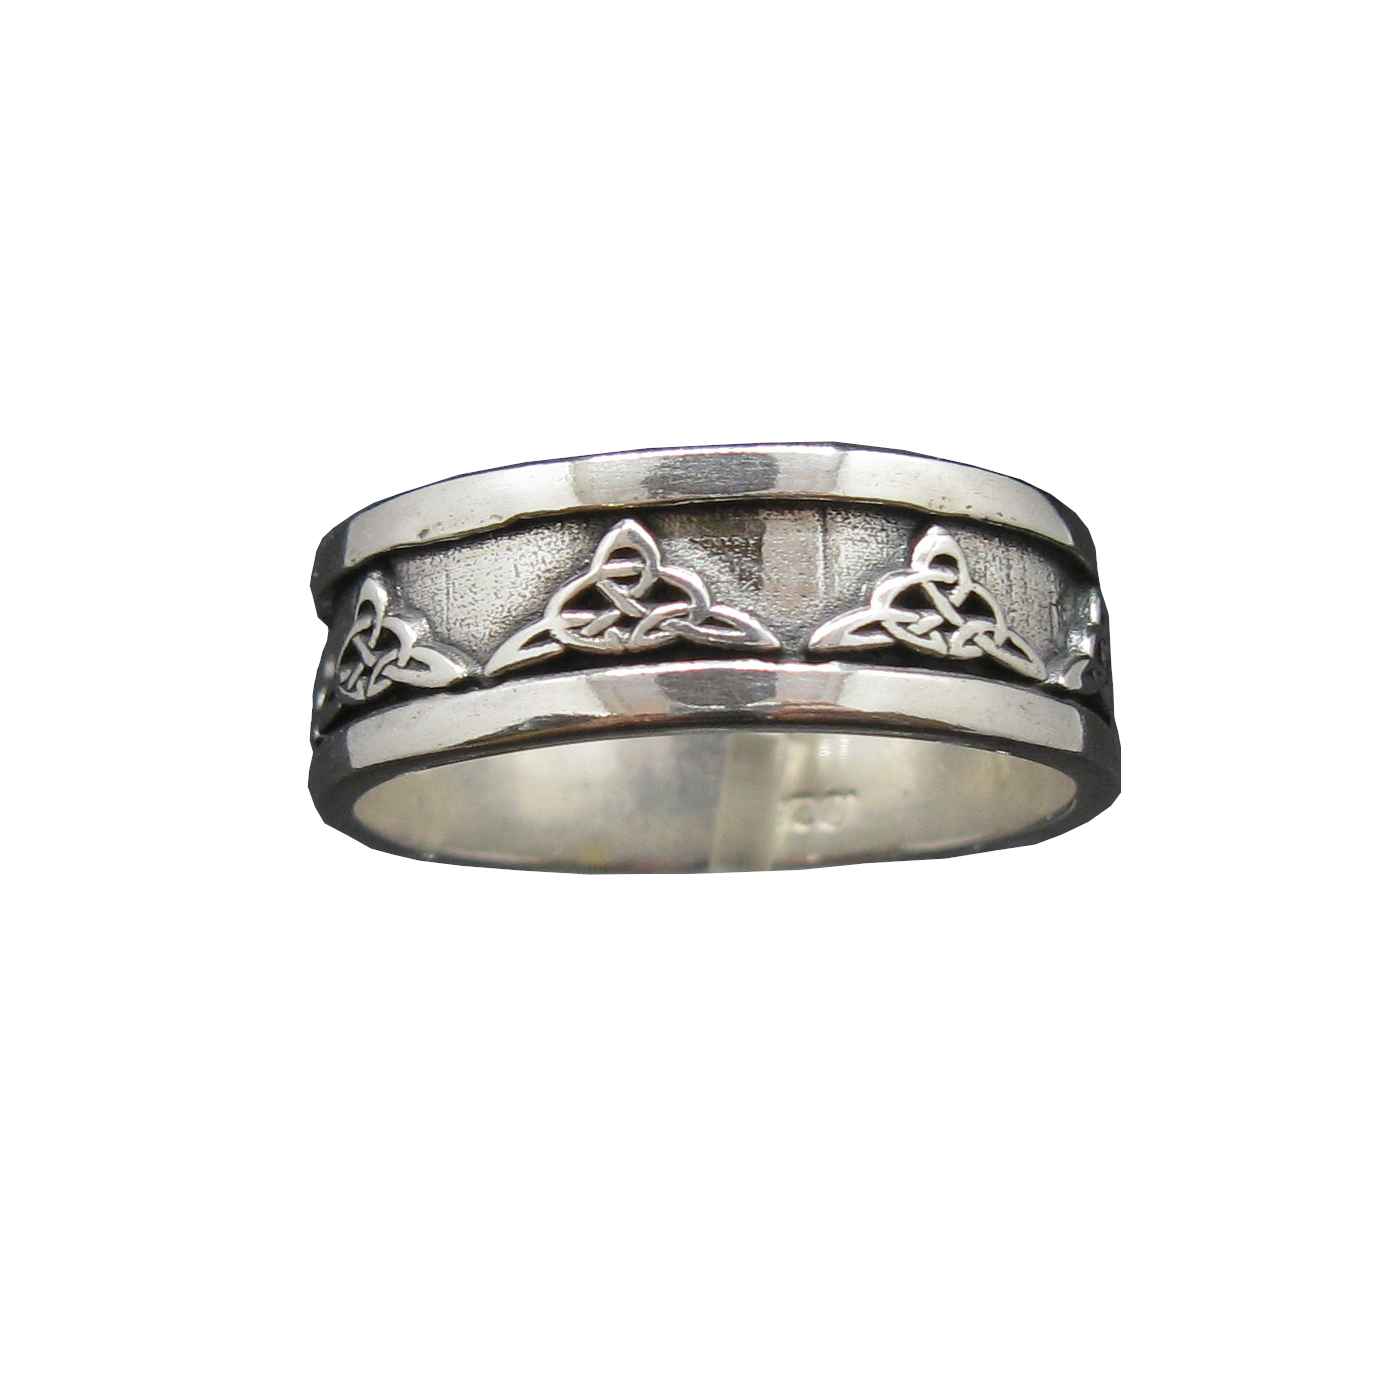 Silver ring - R002079